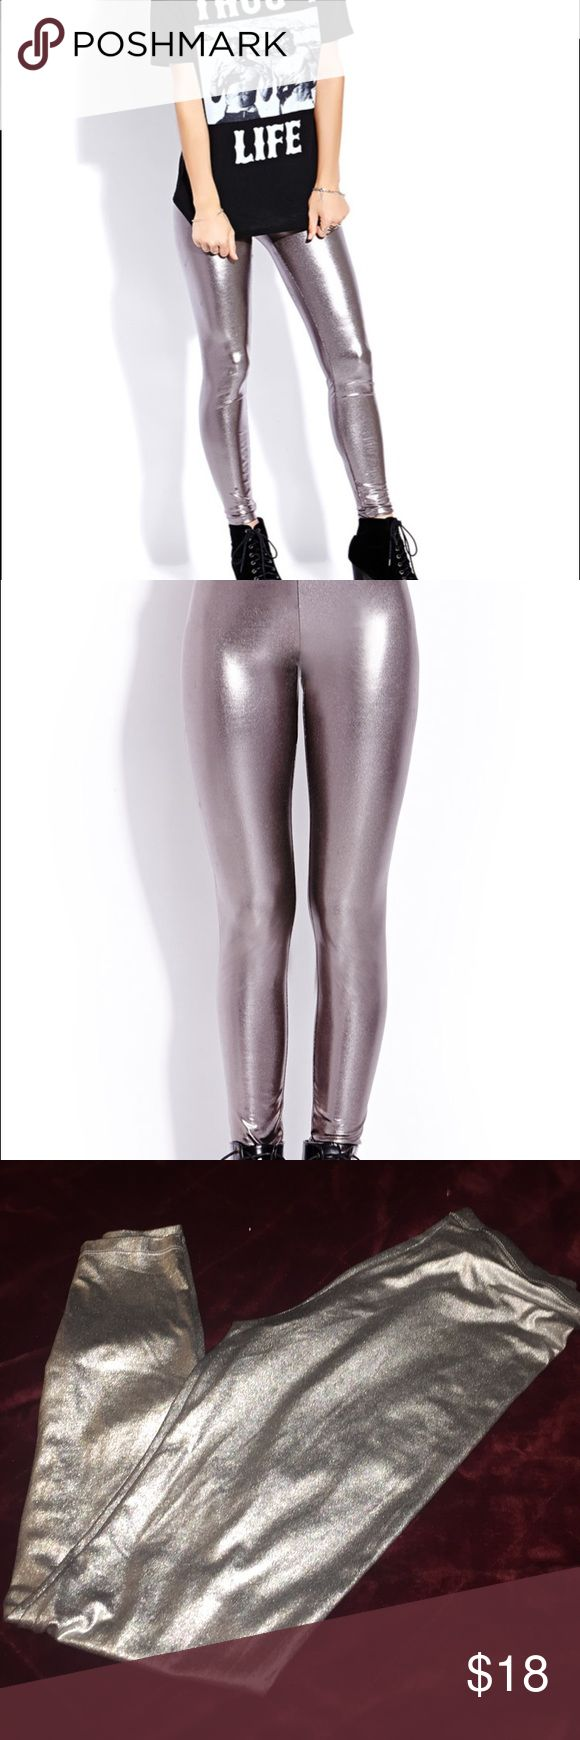 Silver leggings Forever 21 These are so fabulous.. these are a silver legging from Forever 21.. they're a metallic silver, perfect for New Years Eve parties.. you will look gorgeous.. great condition Forever 21 Pants Leggings